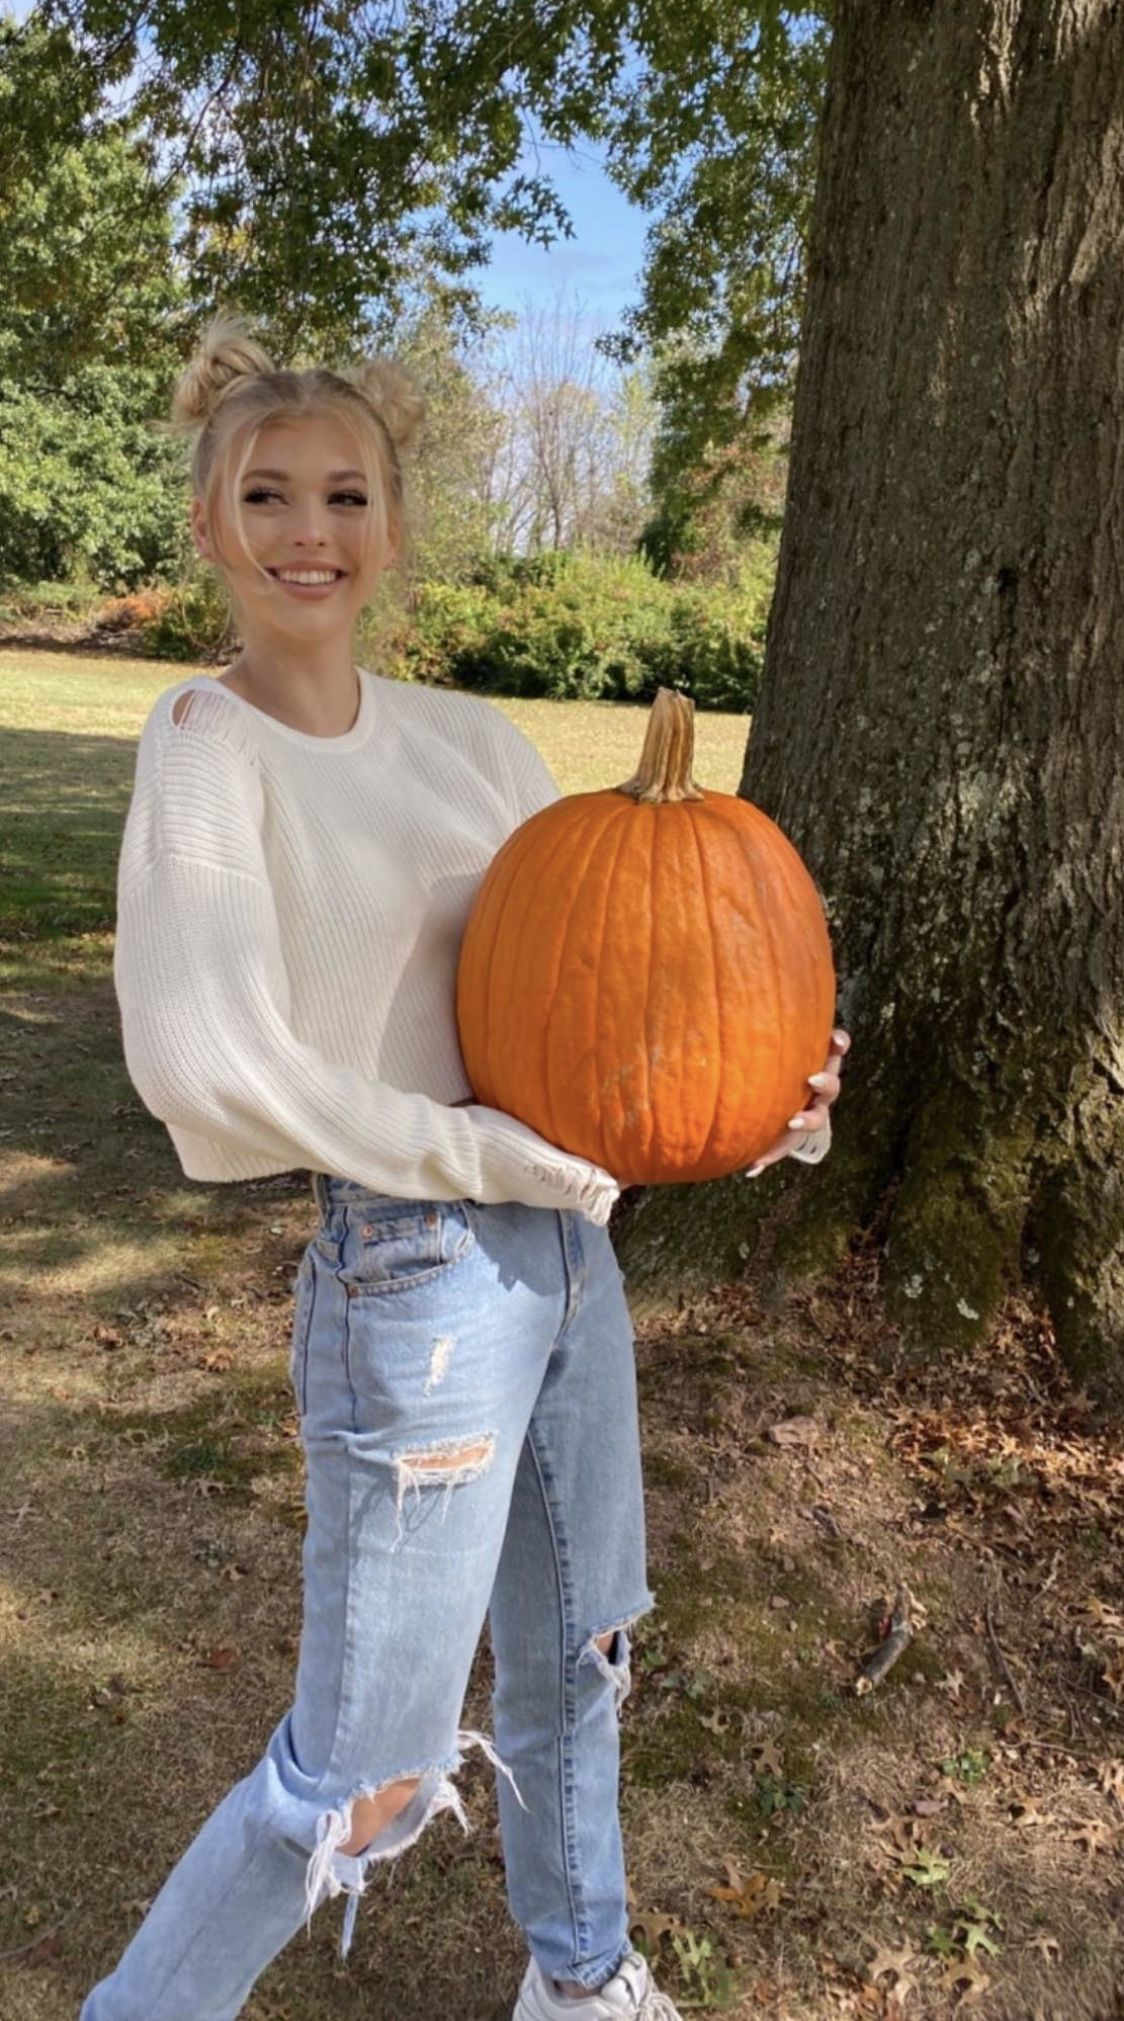 Cute fall pumpkin patch outfit for girls #pumpkinpatchoutfit Cute fall outfit and adorable simple pumpkin patch outfit for girls #pumpkinpatchoutfitwomen